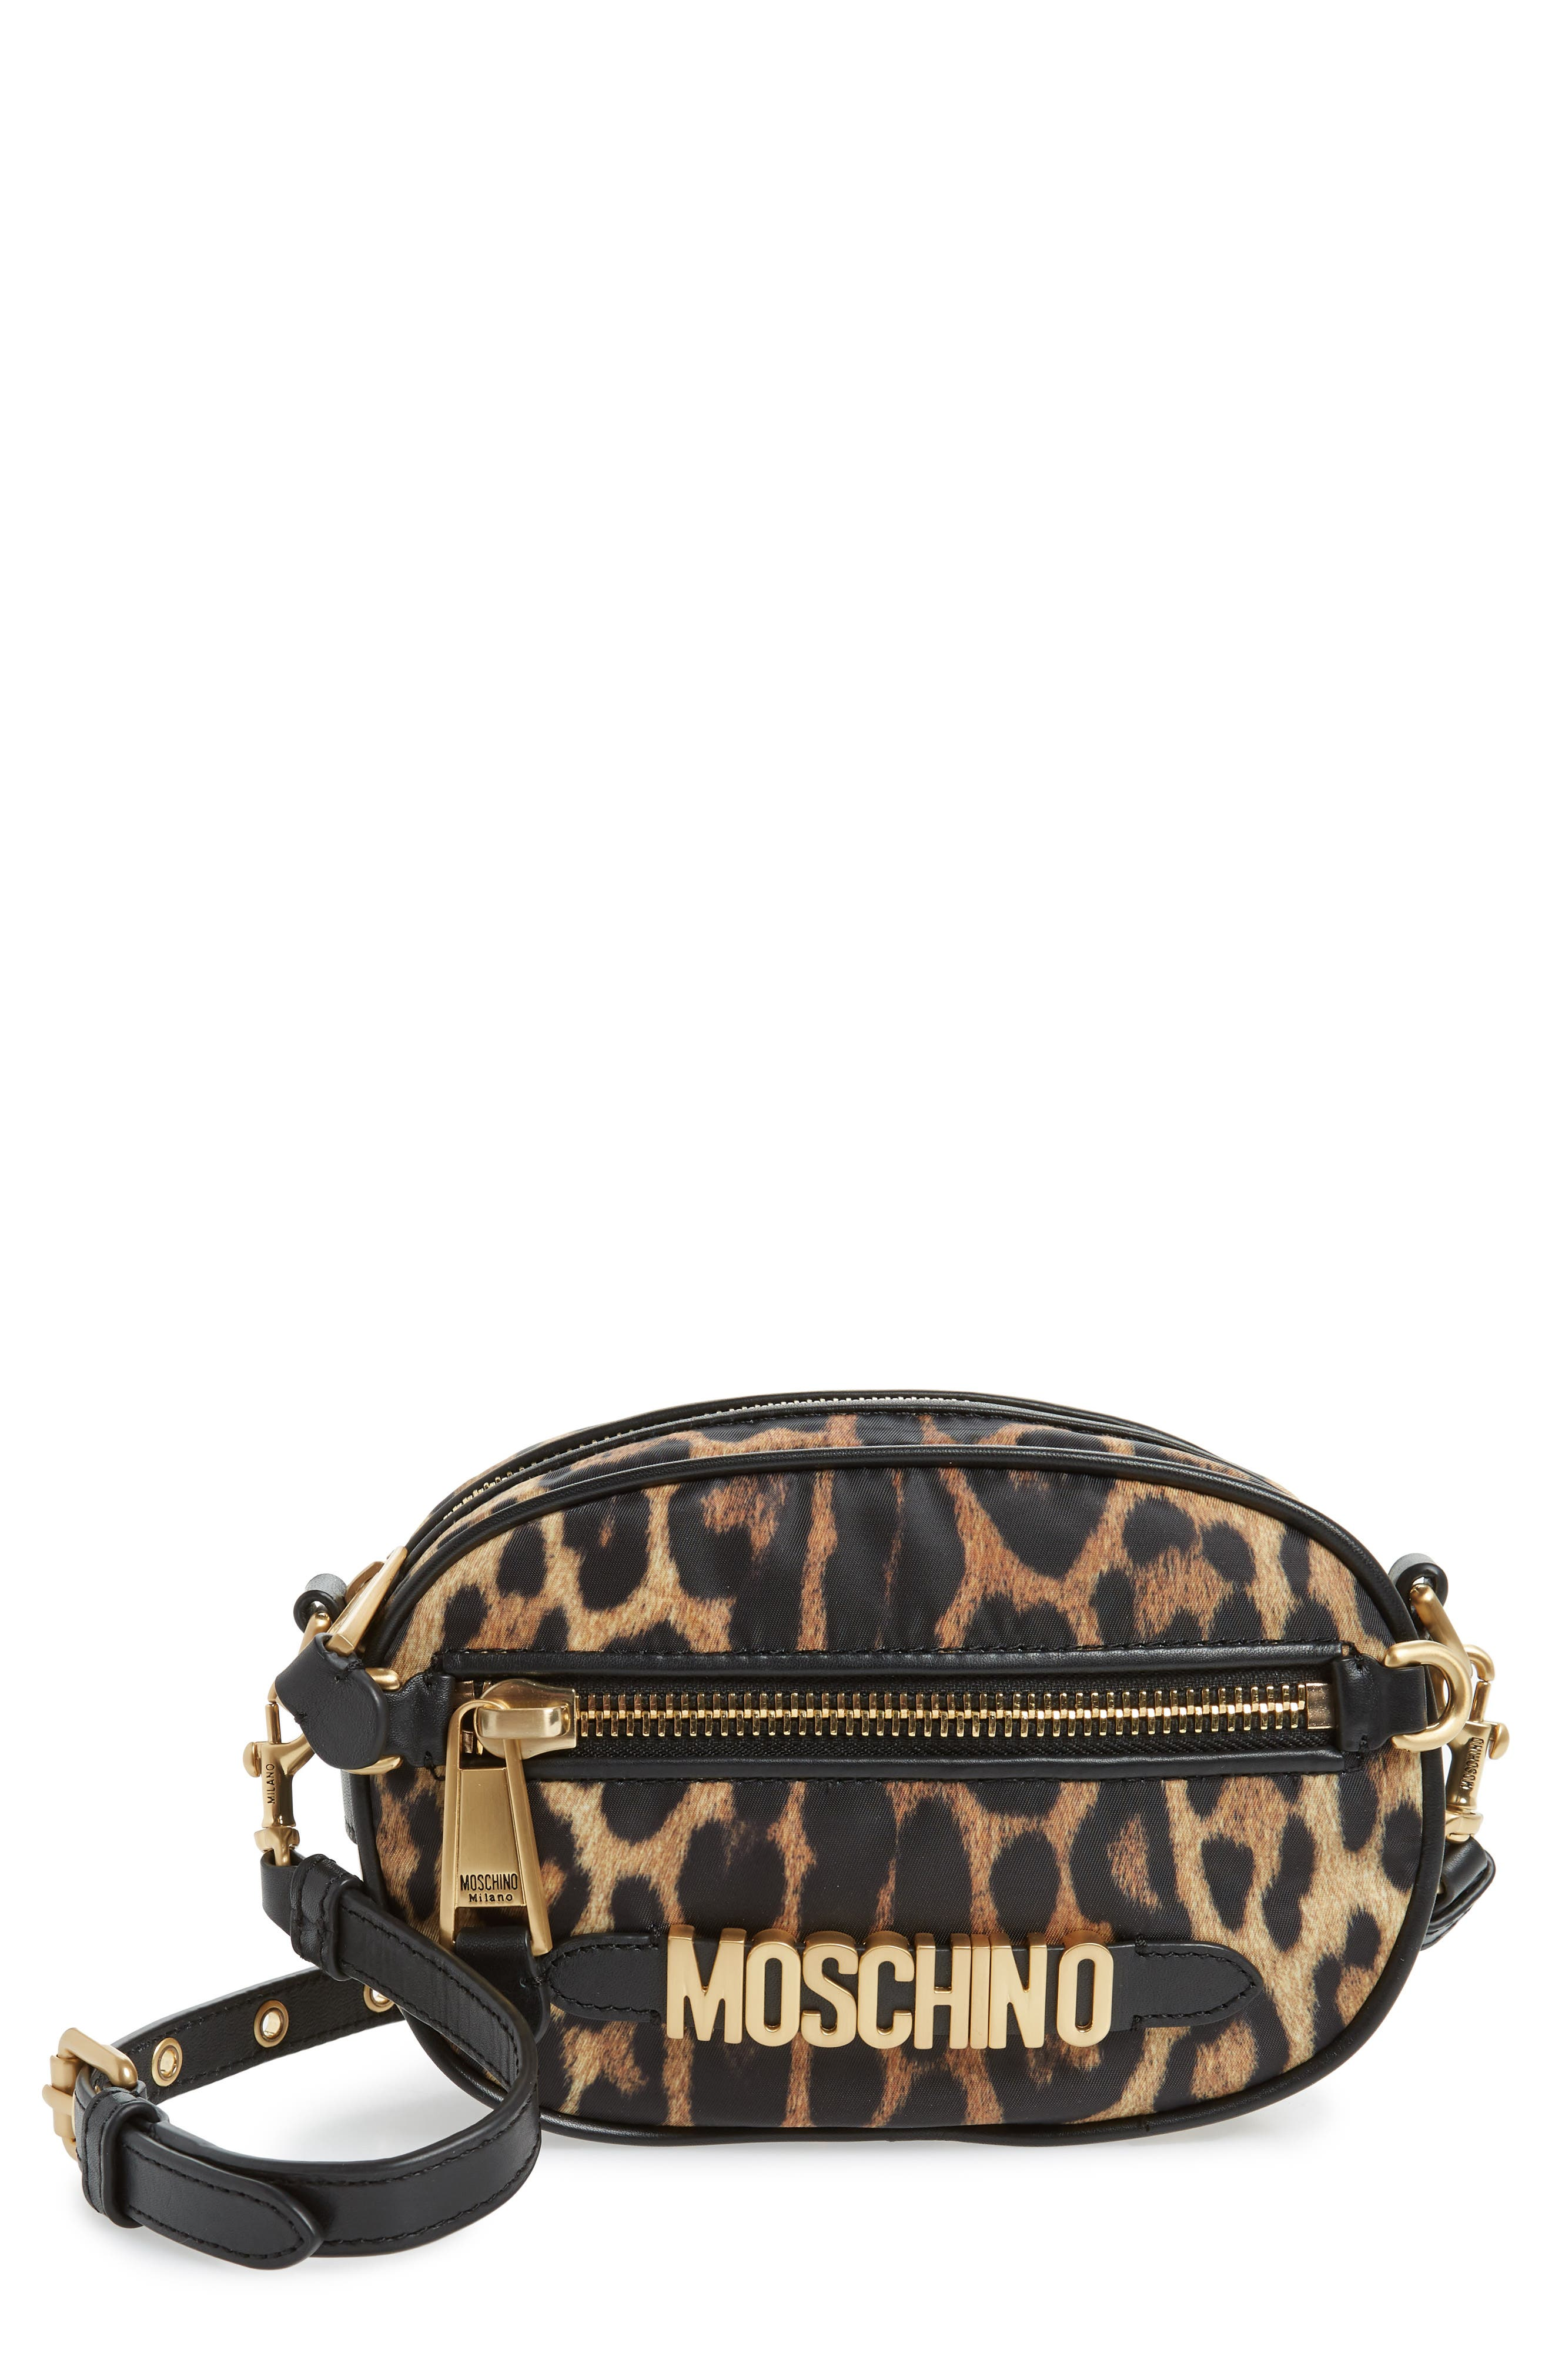 ff750f36e Moschino Handbags & Wallets for Women | Nordstrom